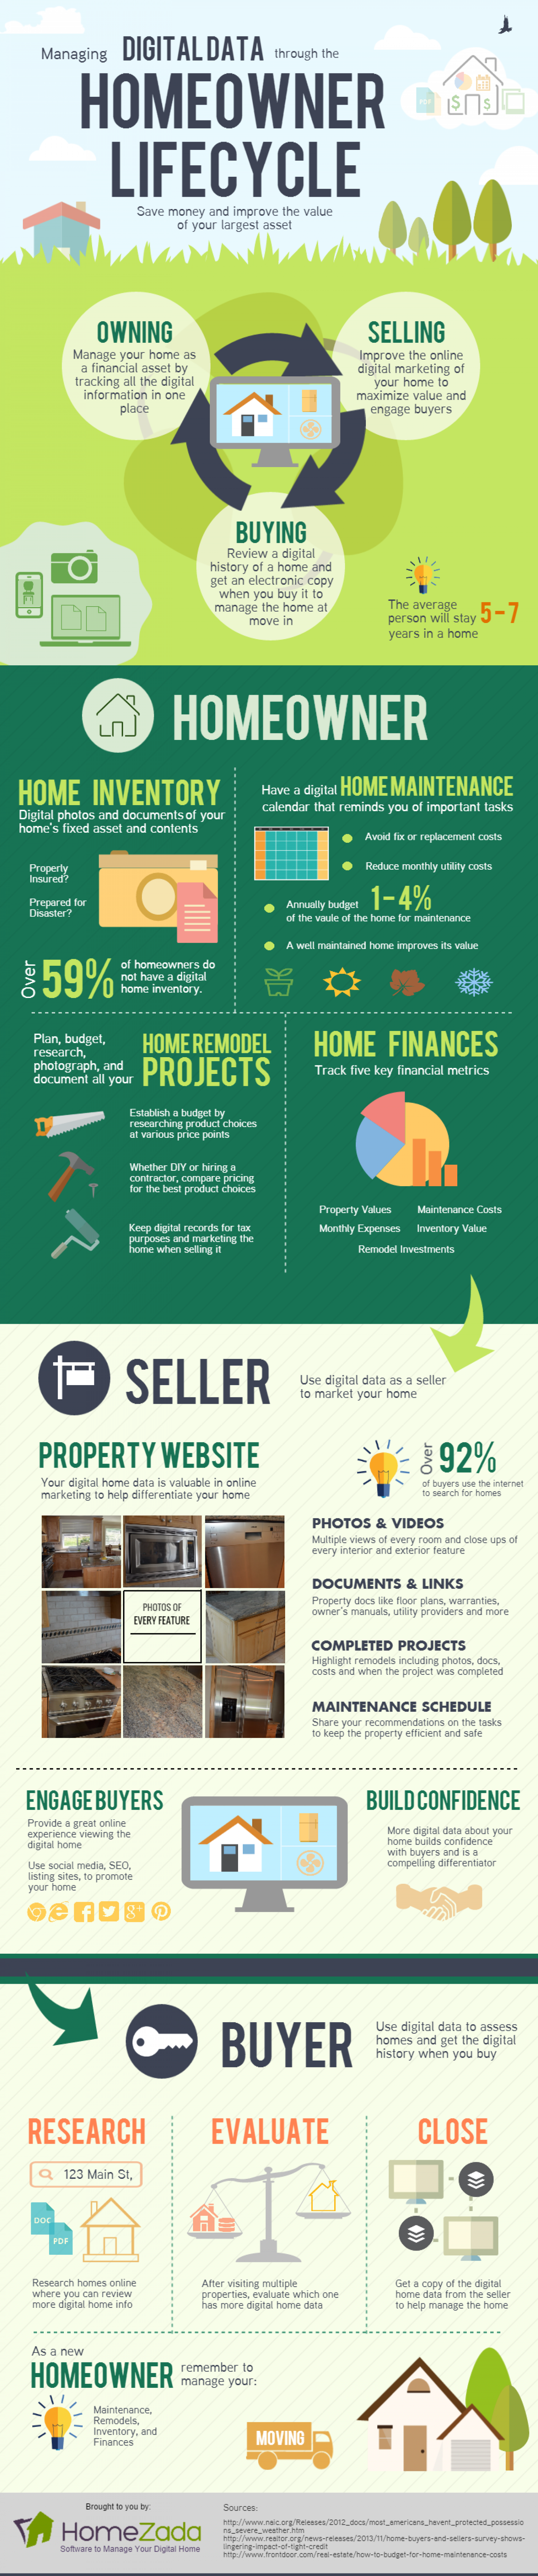 Digital Home Data through the Homeowner Lifecycle Infographic